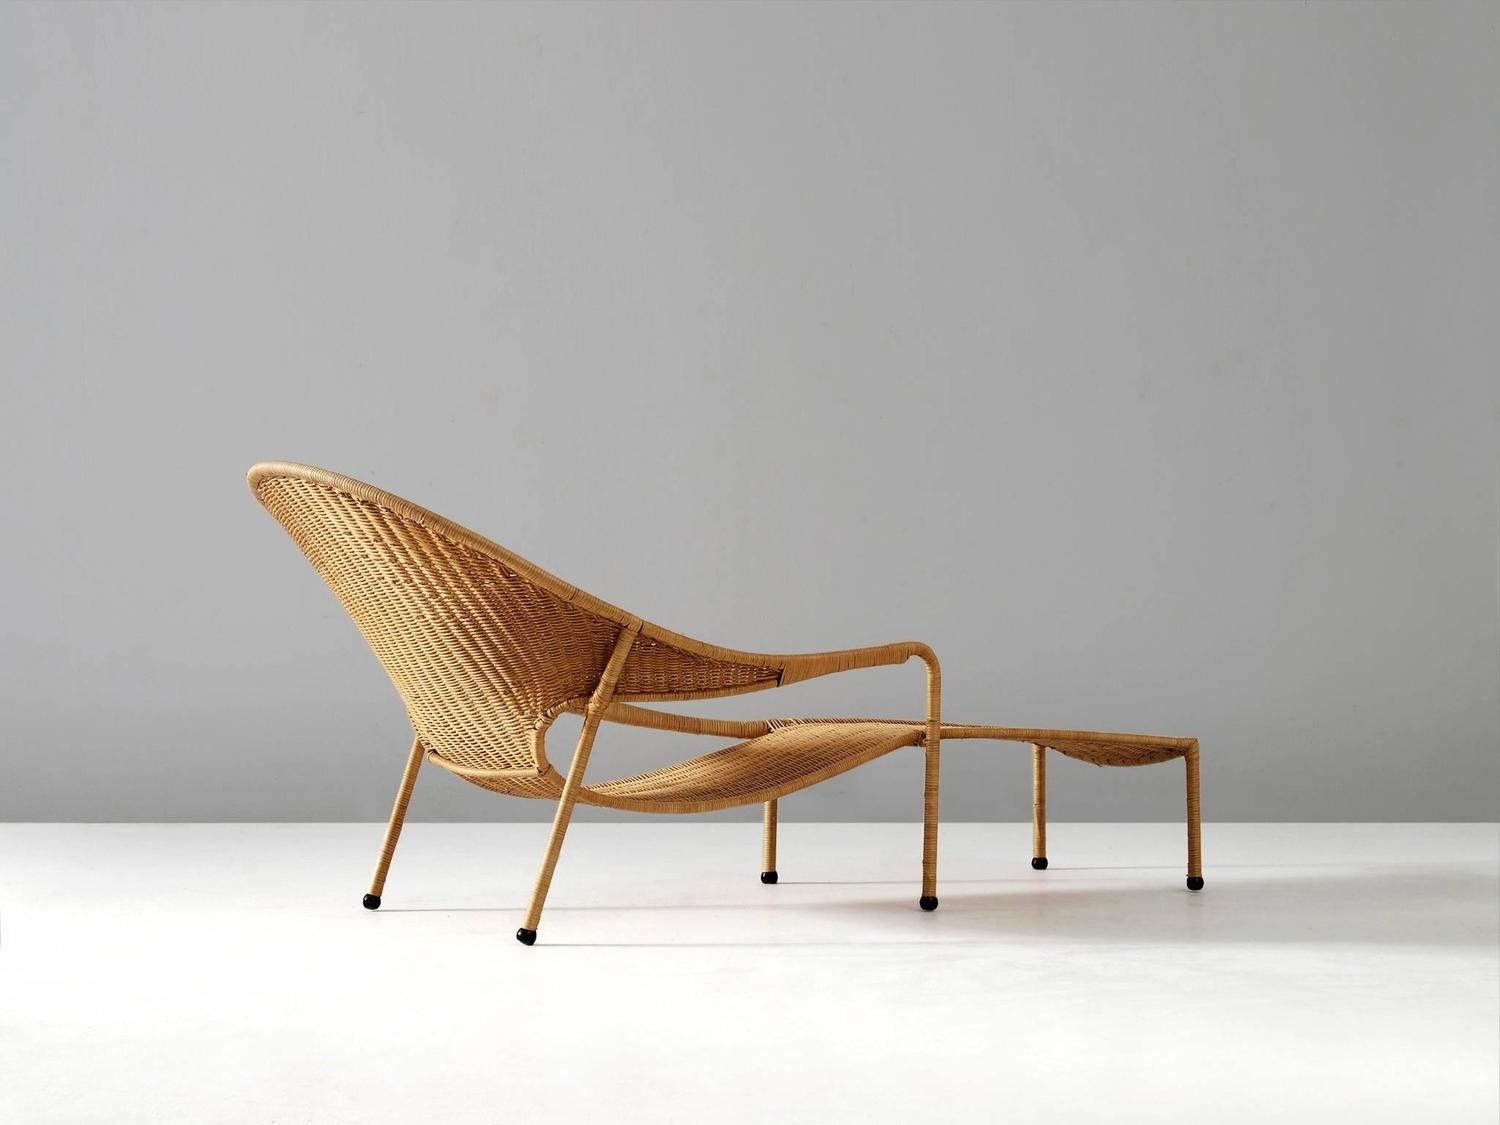 Francis mair wicker chaise longue for sale at 1stdibs for Chaise longue rattan sintetico